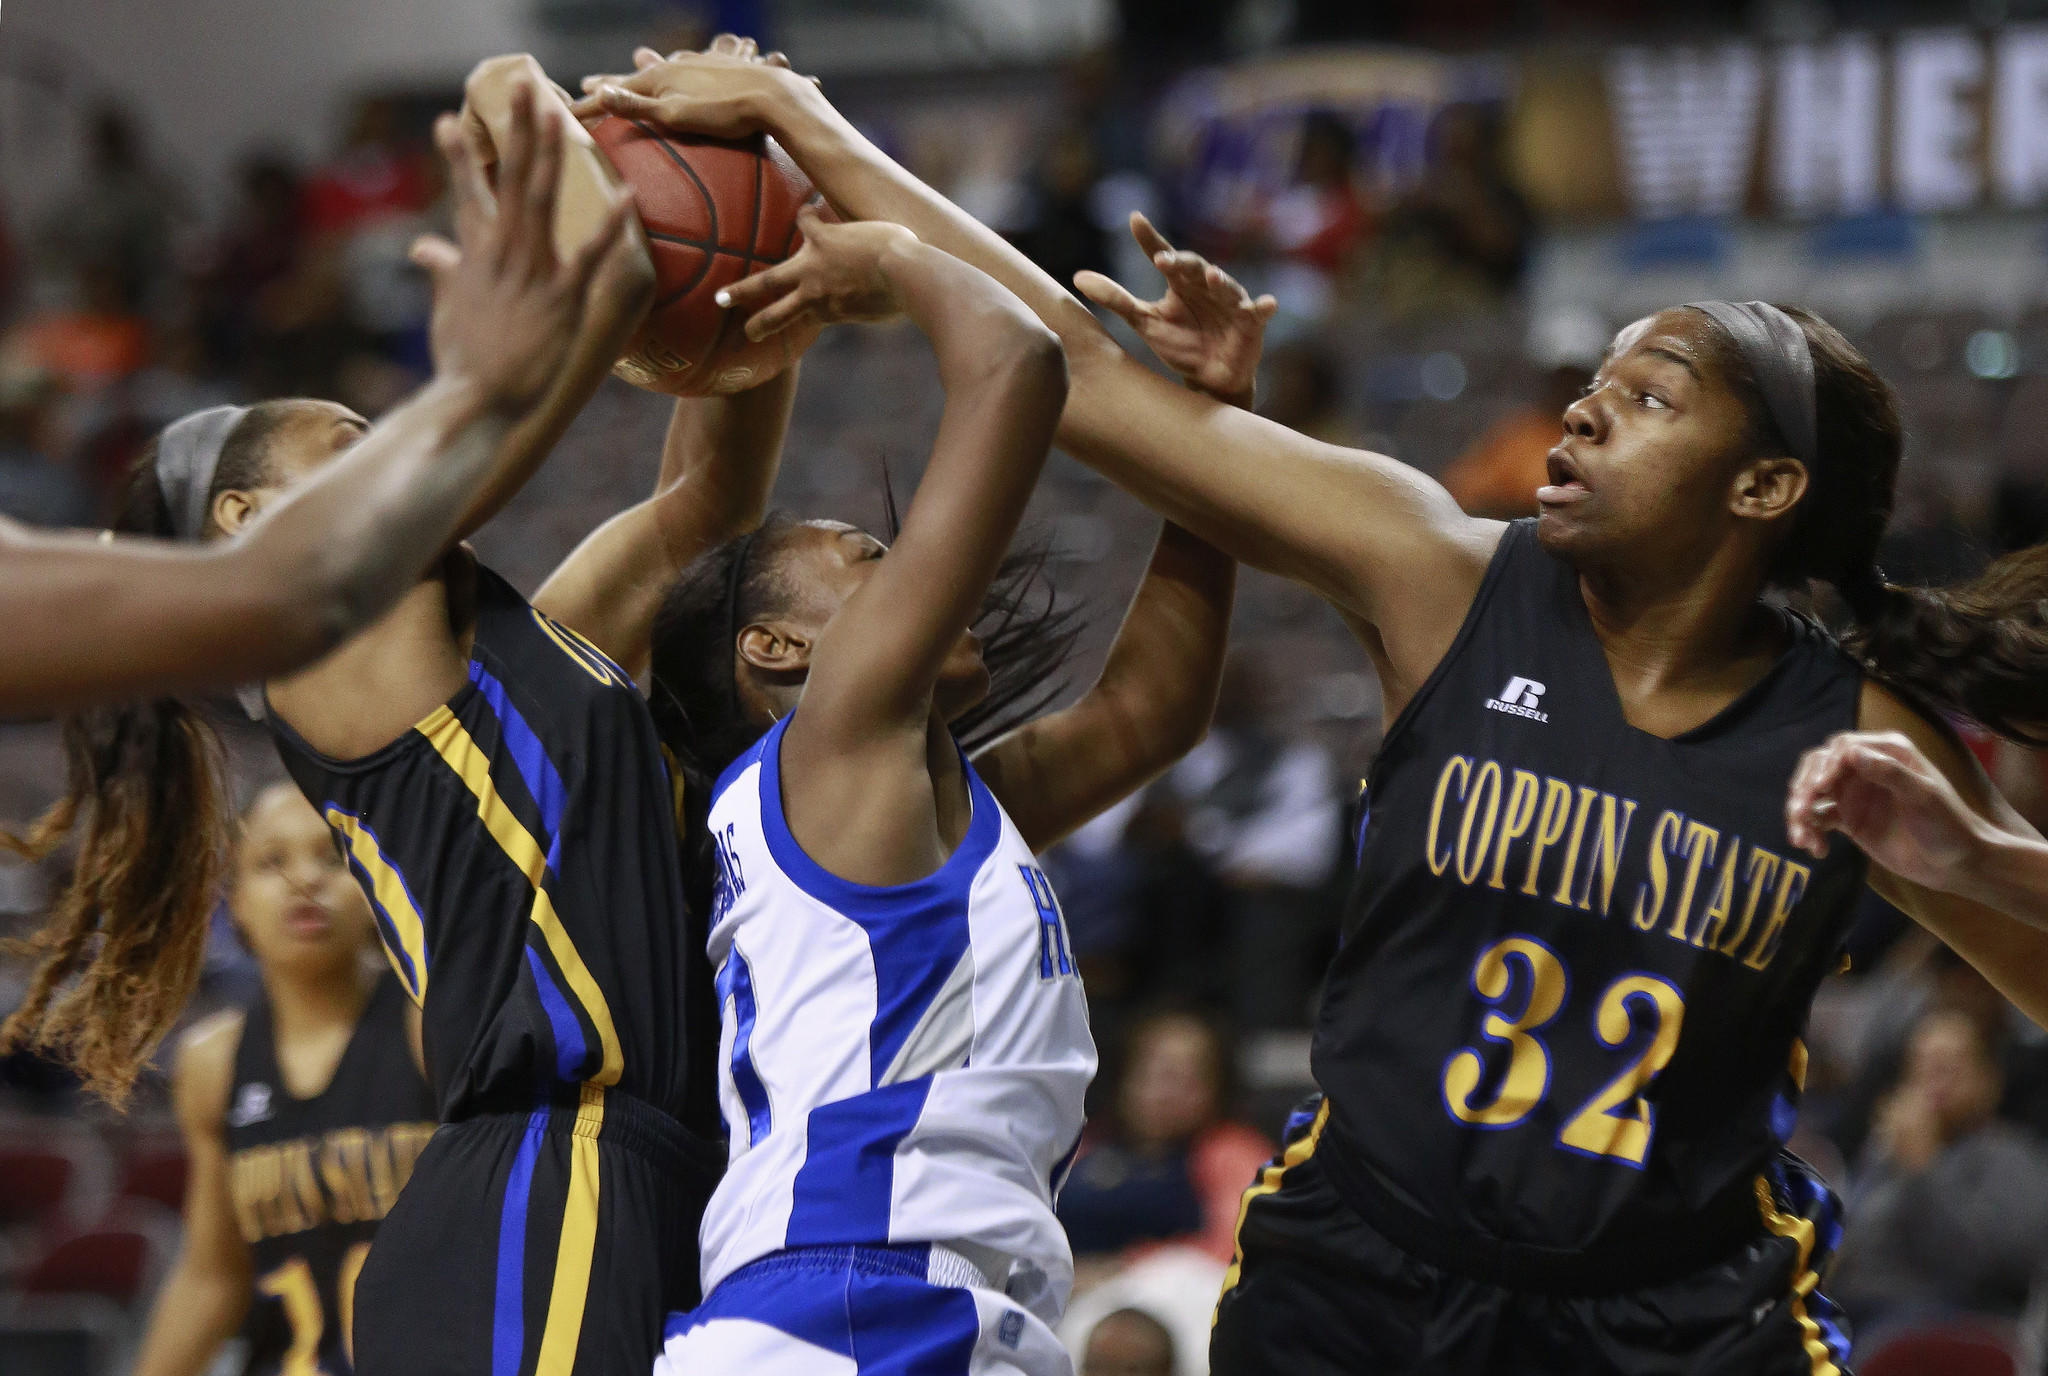 Coppin State's Kyra Coleman, left, and Omaah Tayong block Hampton's Malia Tate-DeFreitas during the first half of the MEAC championship game.